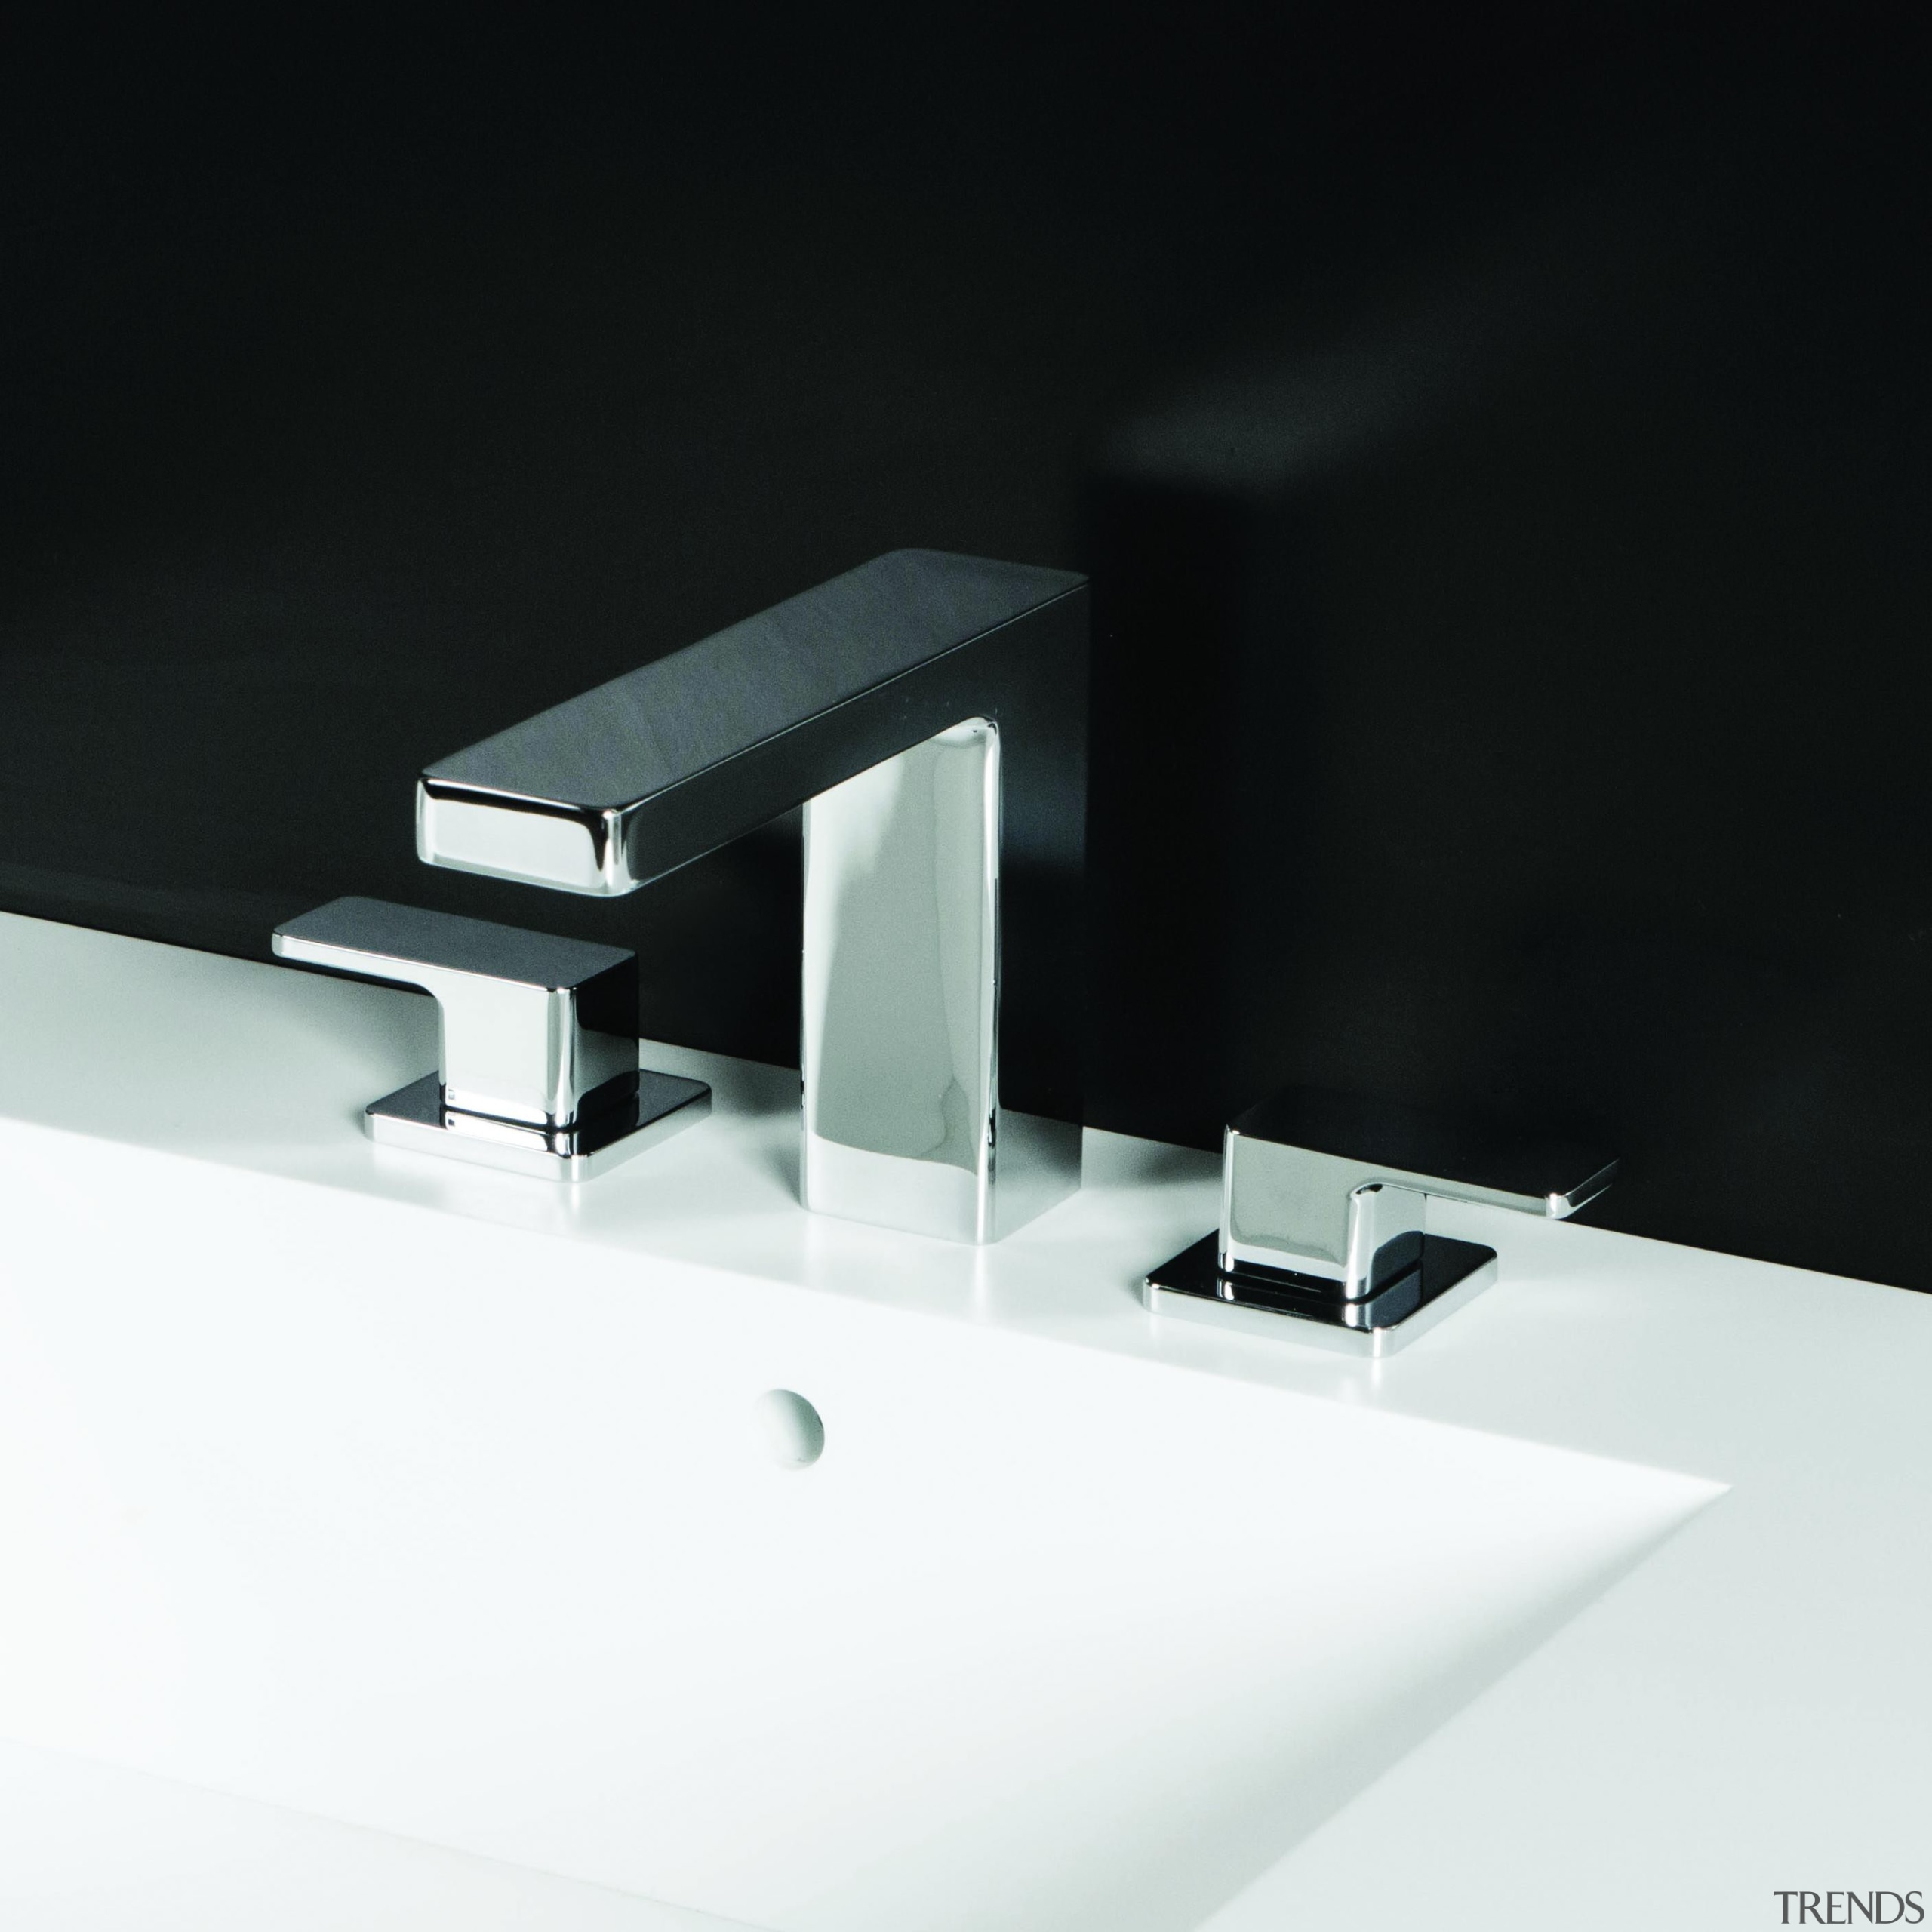 Deck-mount three-hole faucet with a square-neck spout, two angle, hardware, plumbing fixture, product, product design, tap, black, white